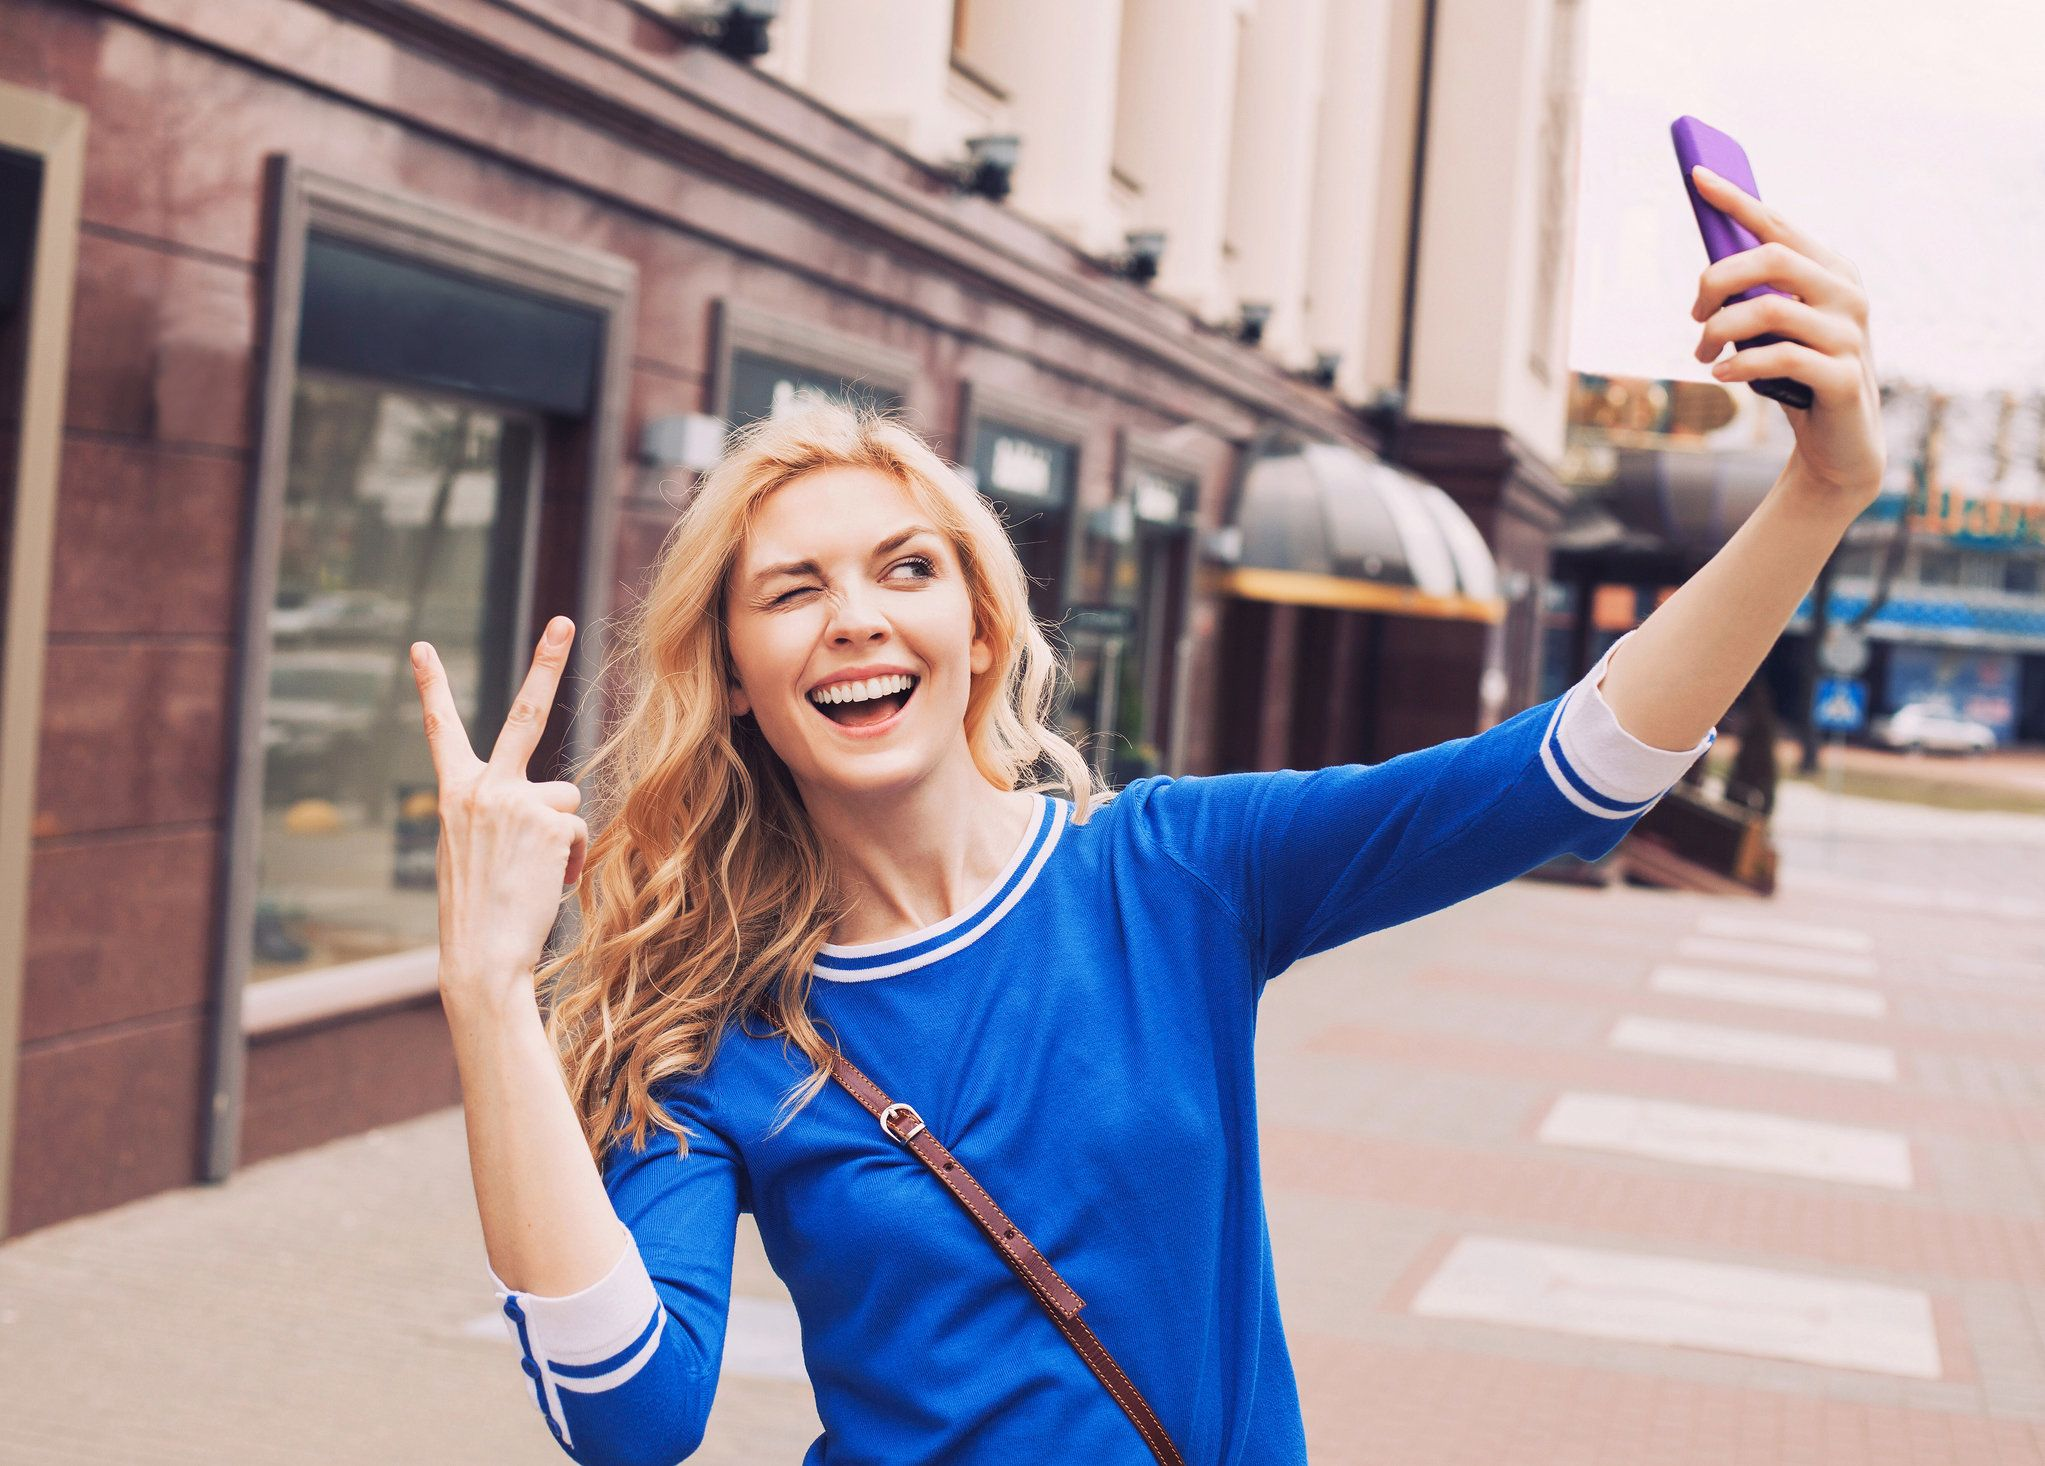 Young woman taking a selfie in a city